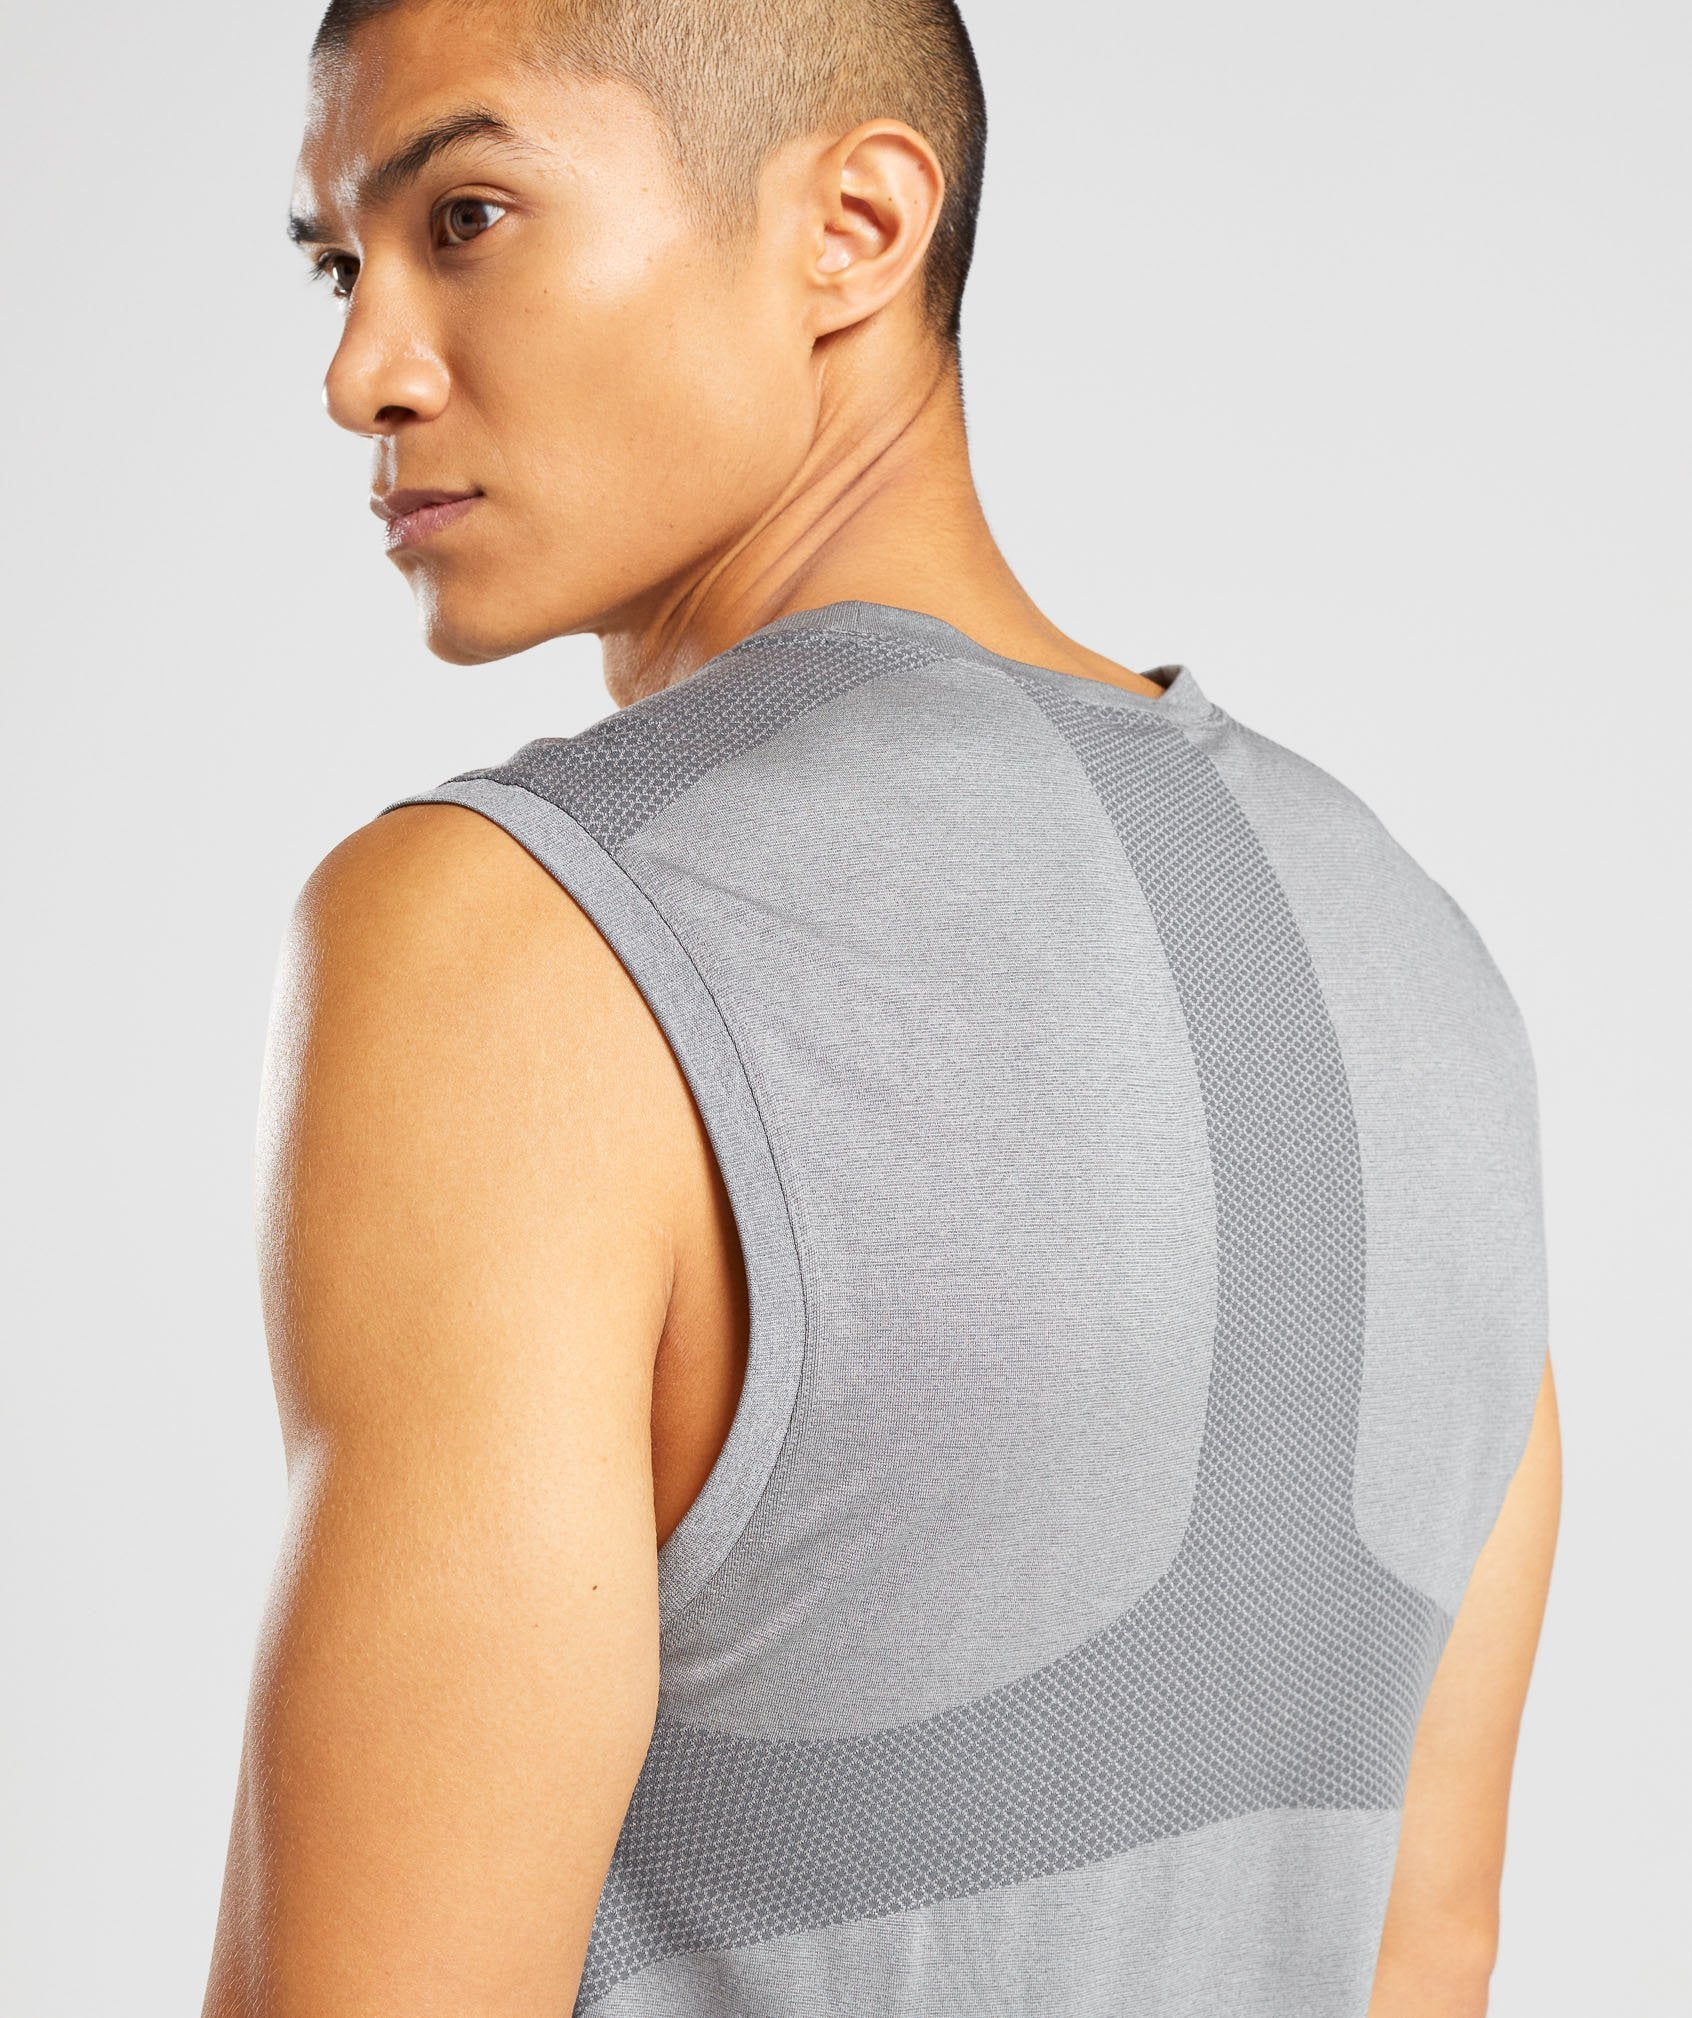 Classier: Buy Gymshark Regulate Training Tank - Smokey Grey/Charcoal - Gymshark